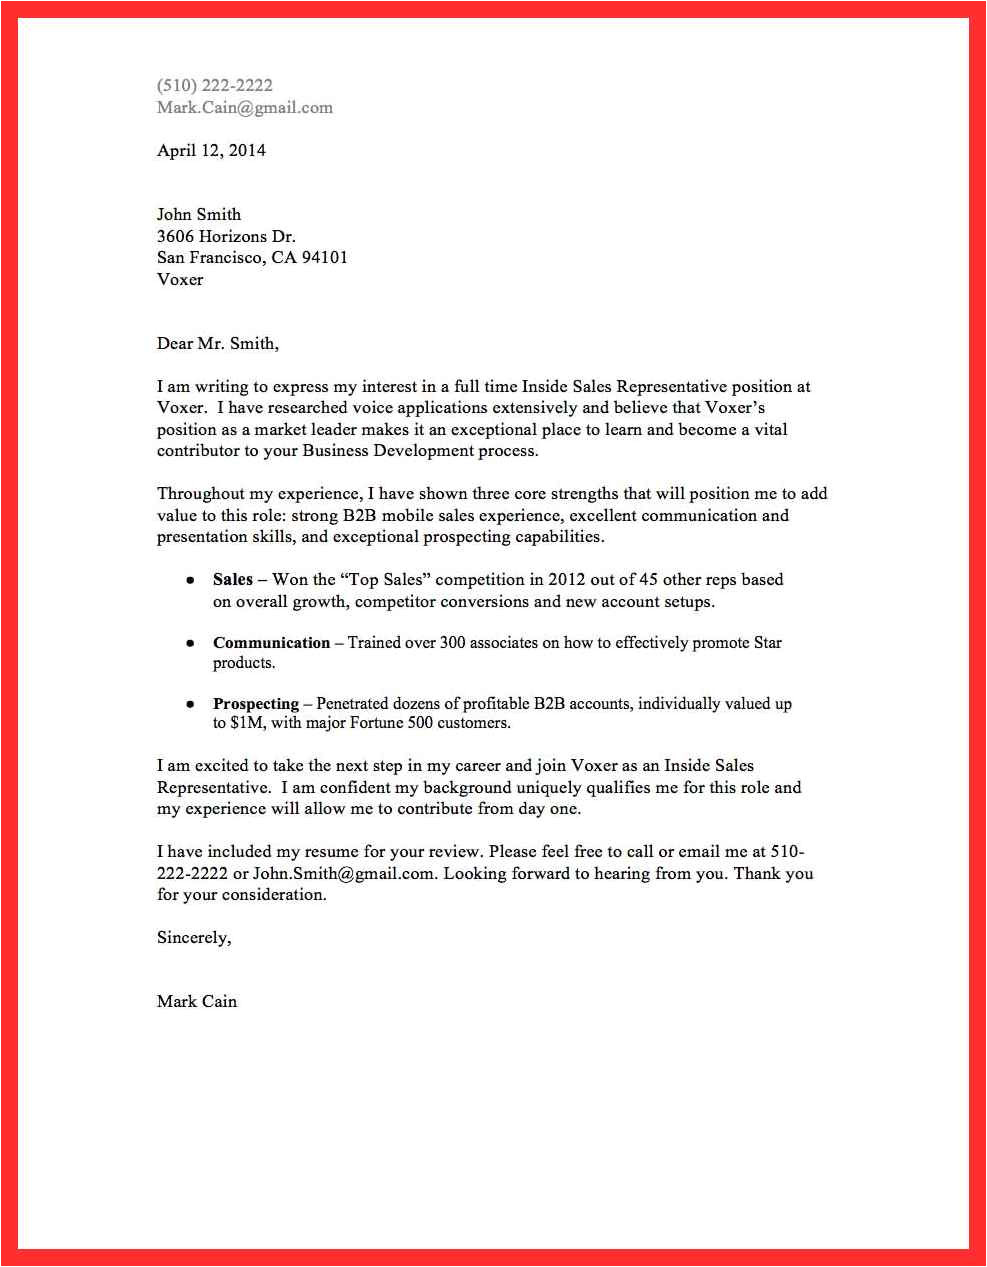 How to Do A Great Cover Letter A Great Cover Letter Good Resume format